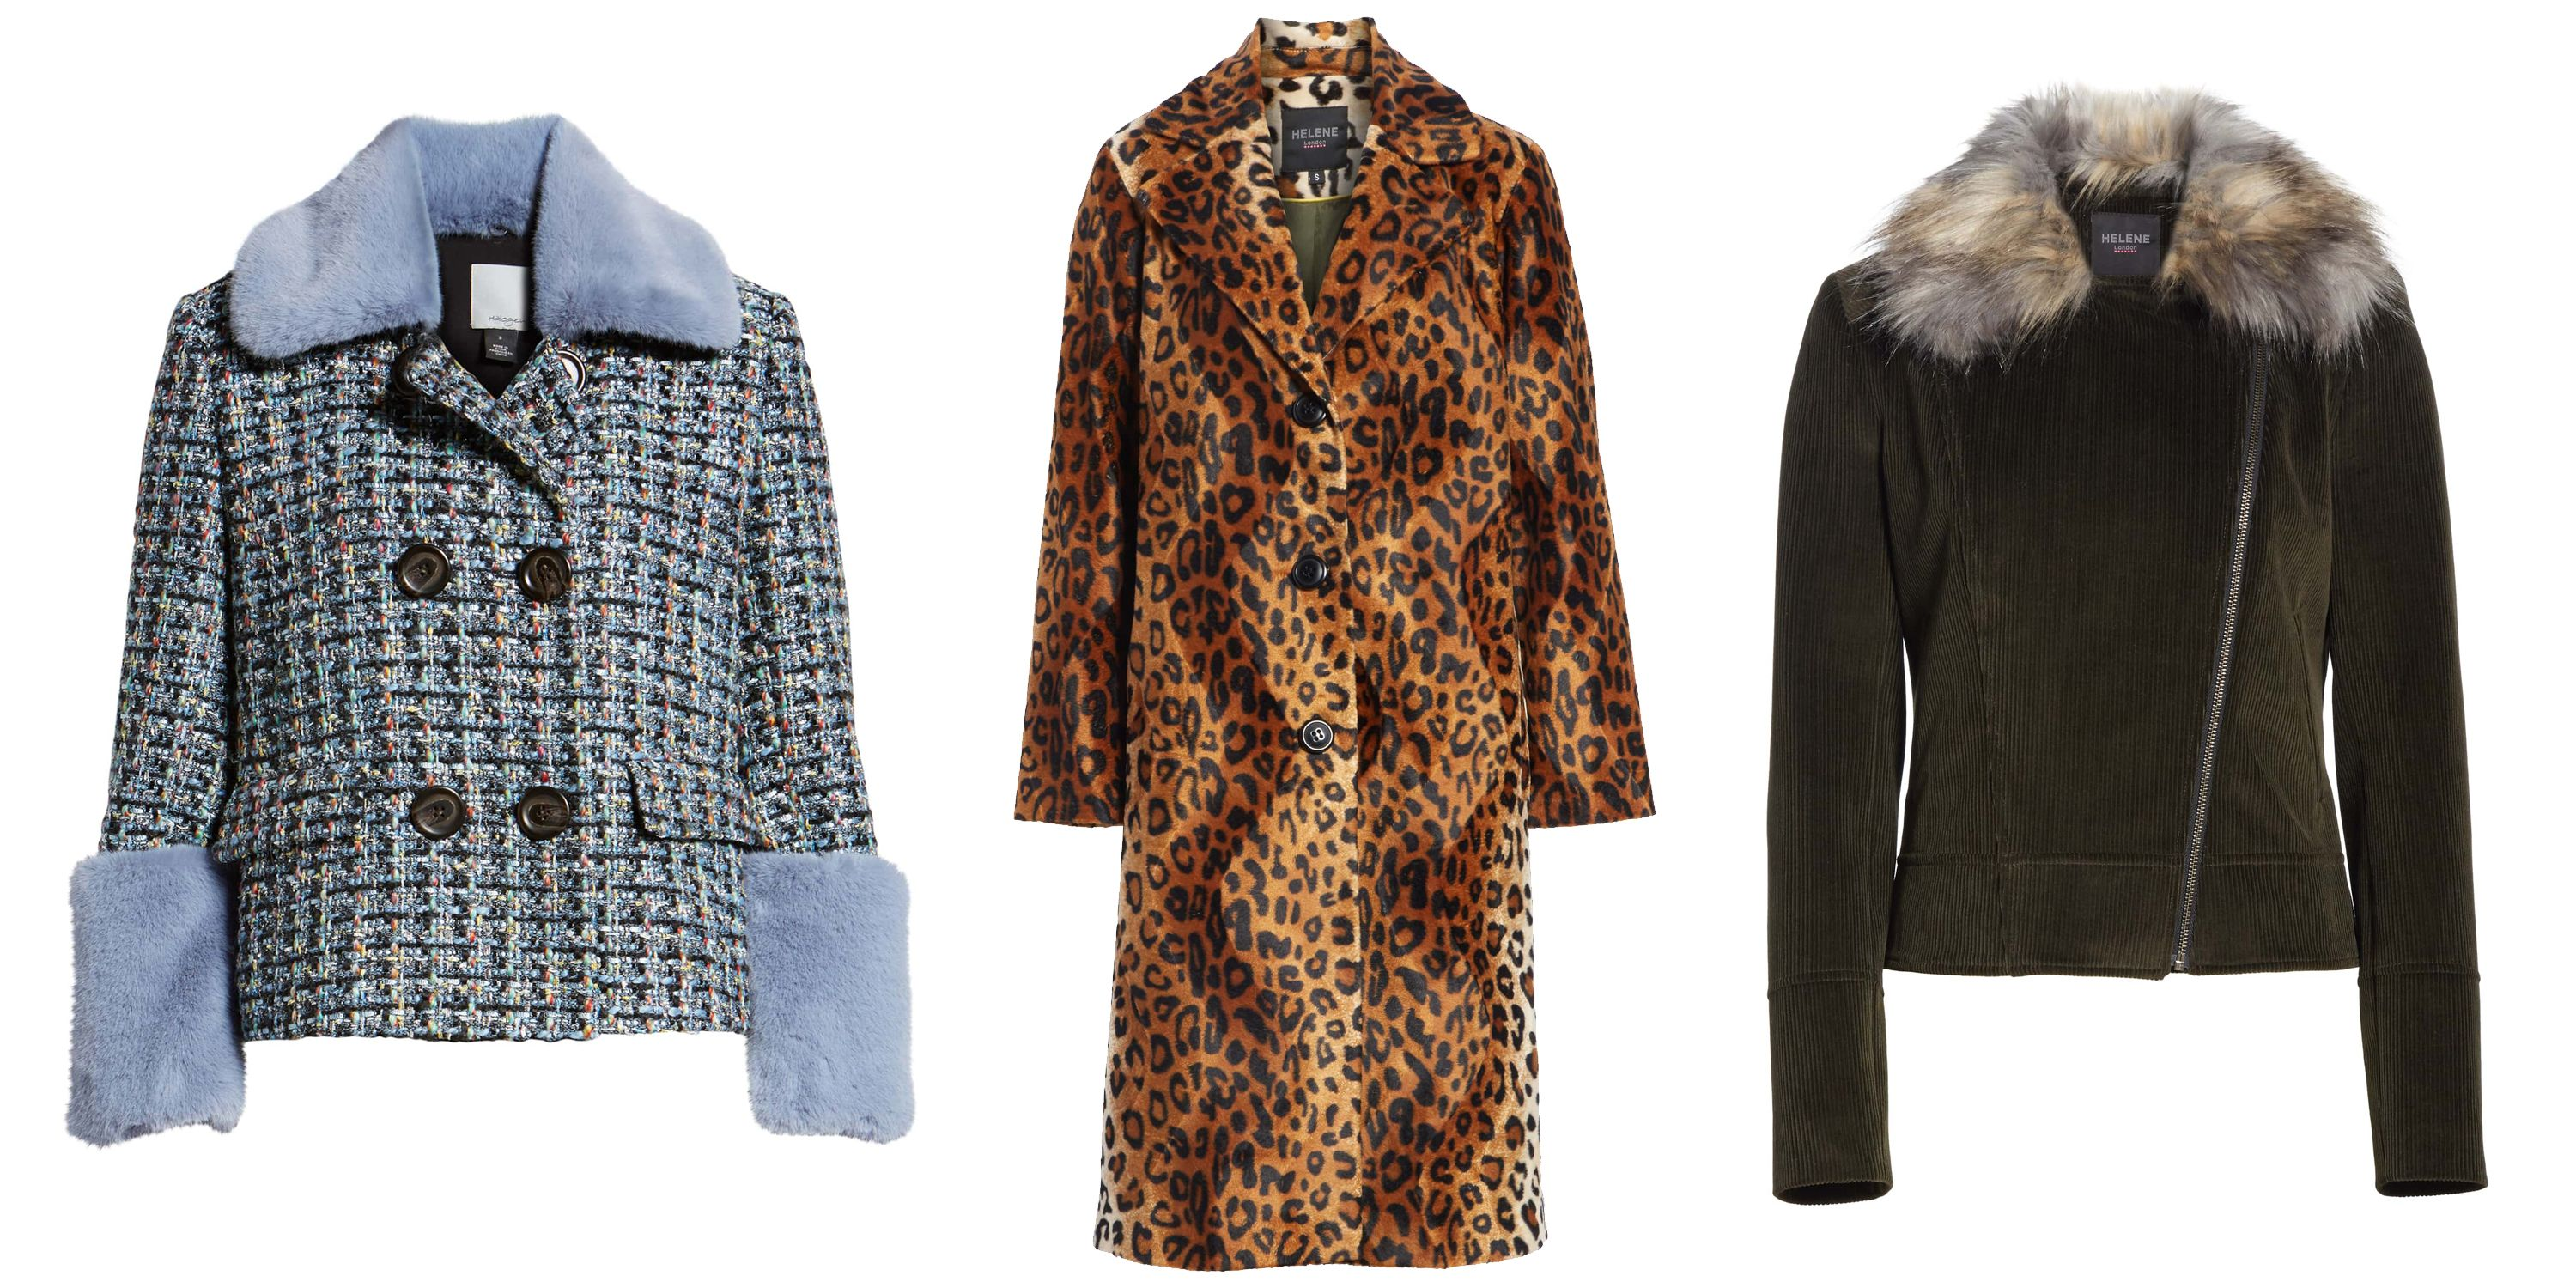 Chic Fall Coats for You to Cozy Up In Style Chic Fall Coats for You to Cozy Up In Style new images